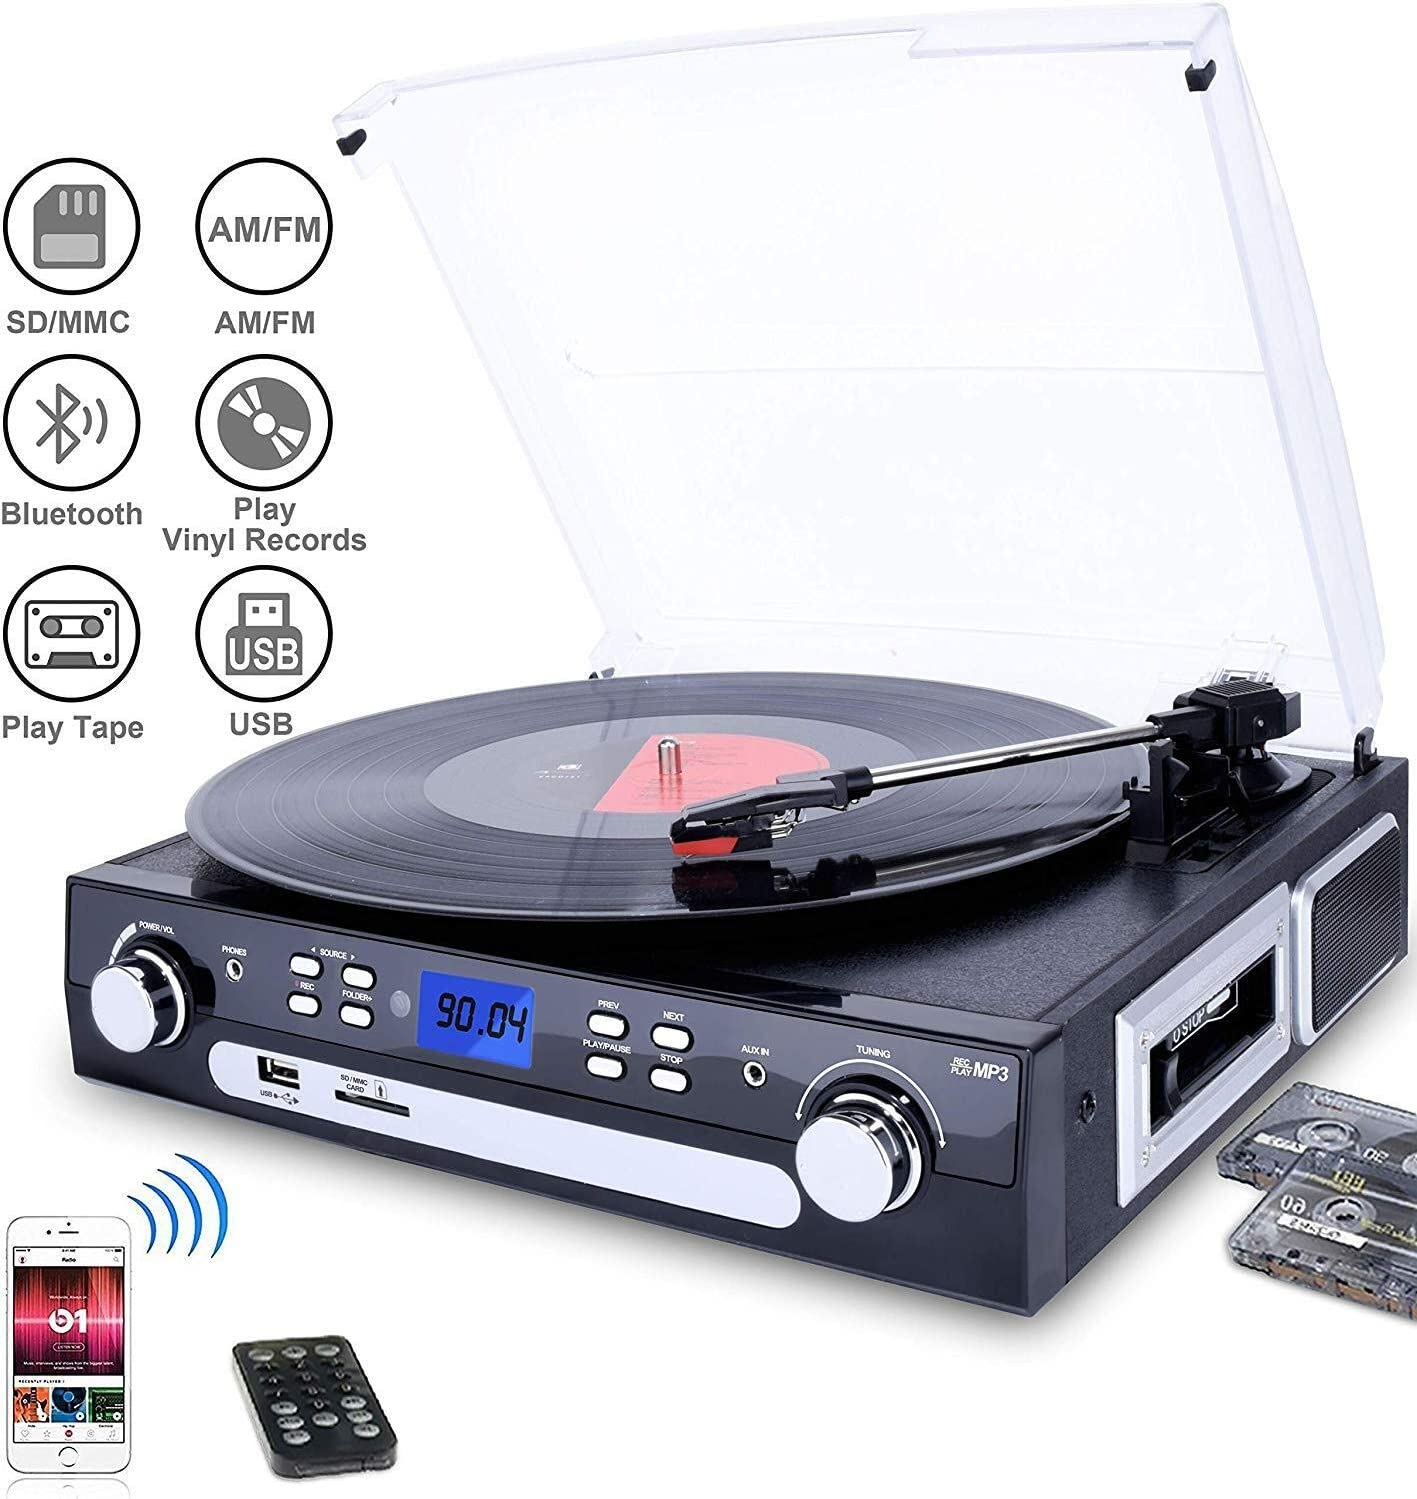 DIGITNOW Bluetooth Record Player with Stereo Speakers, Turntable for Vinyl to MP3 with Cassette Play, AM/FM Radio, Remote Control, USB/SD Encoding, 3.5mm Music Output Jack